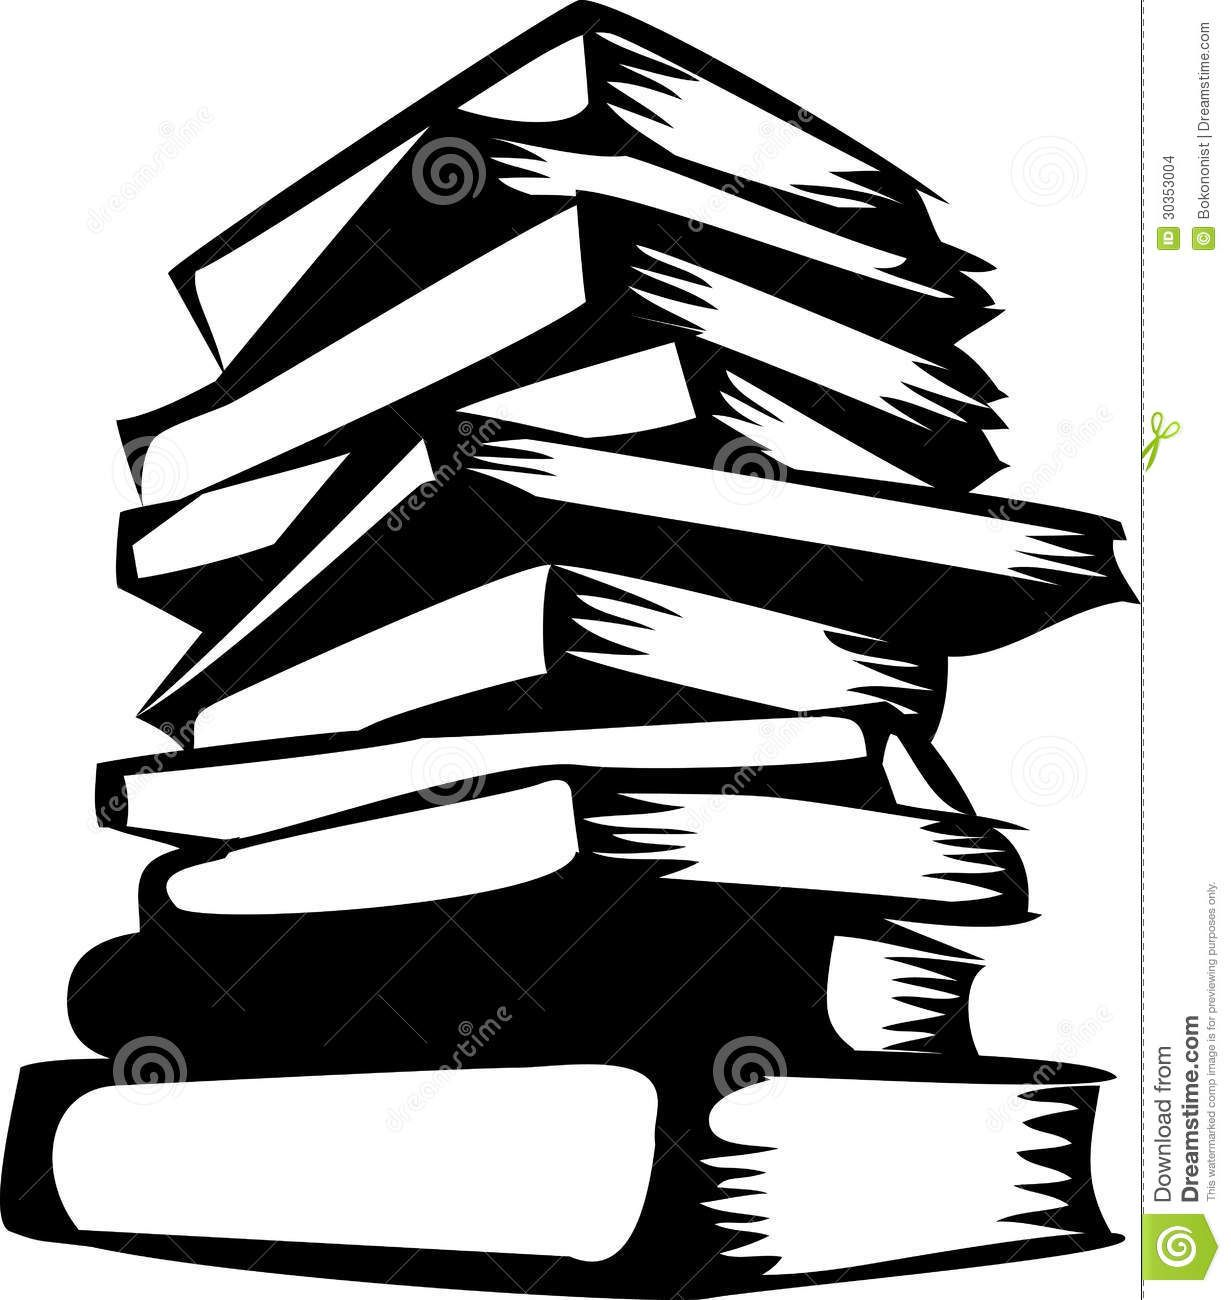 stacked books silhouette use these free images for your websites art projects reports and  [ 1231 x 1300 Pixel ]